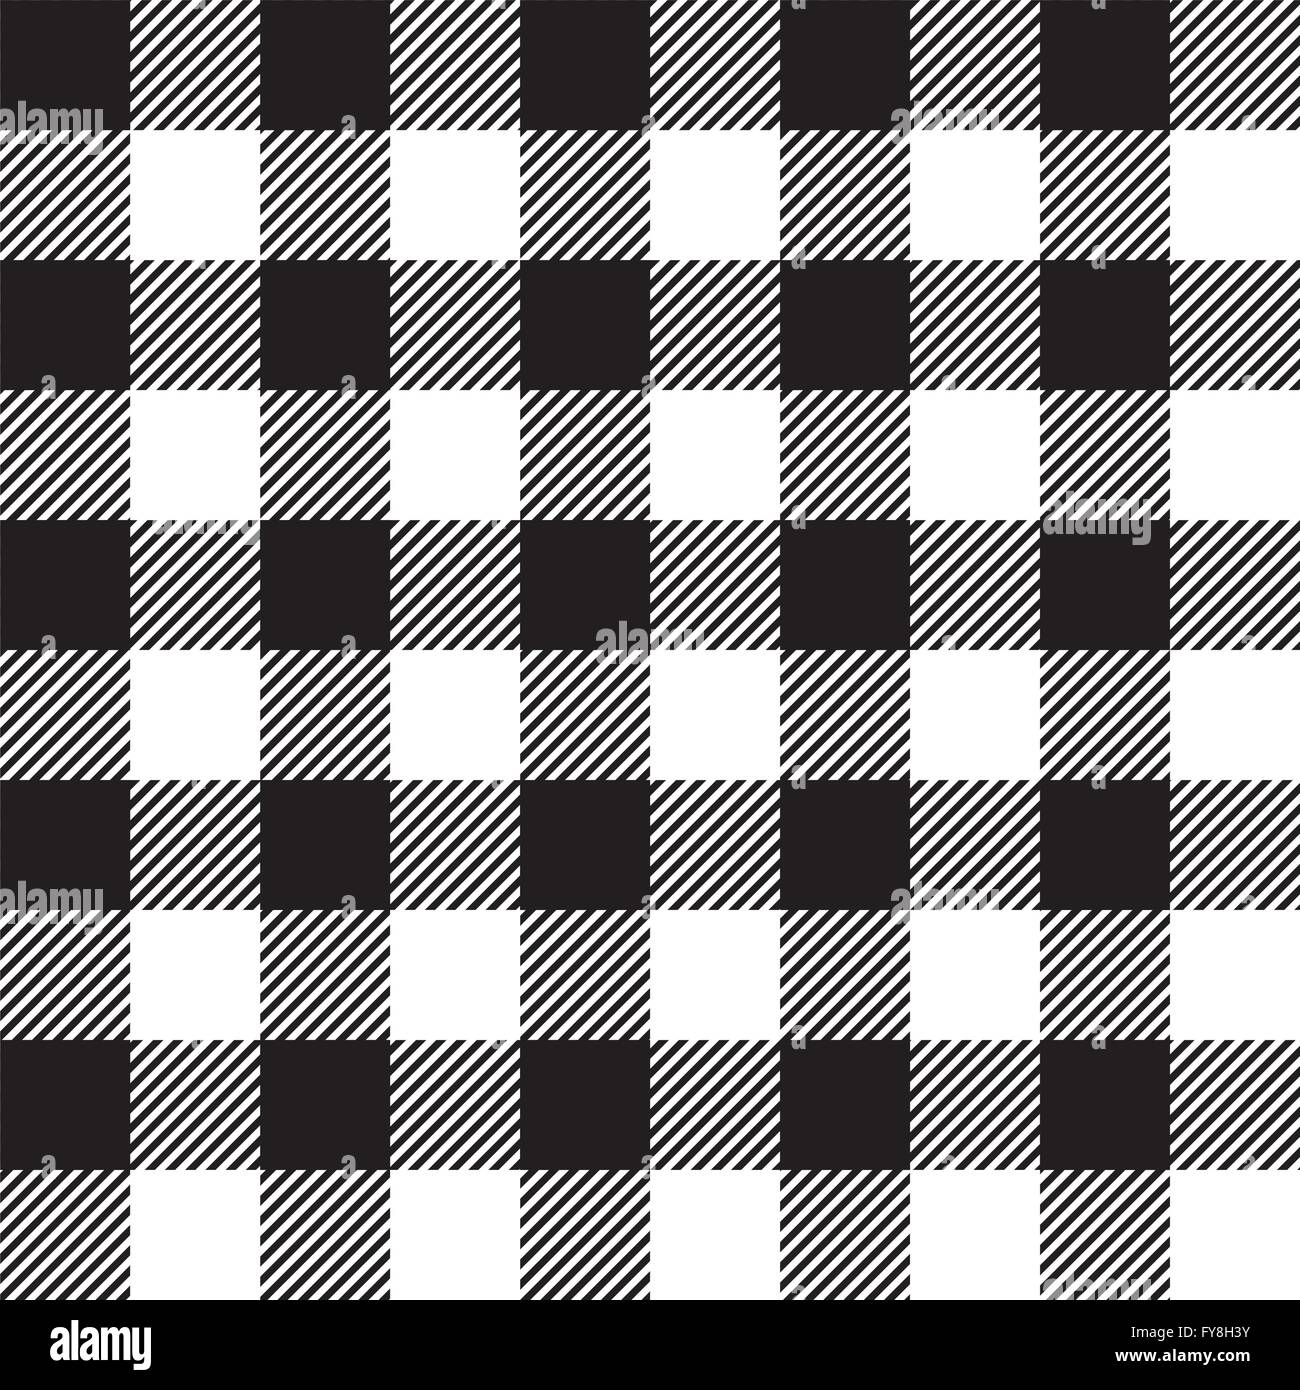 Seamless black and white checkered texture stock images image - Black Tablecloth Seamless Pattern Vector Illustration Of Traditional Gingham Dining Cloth With Fabric Texture Checkered Picnic